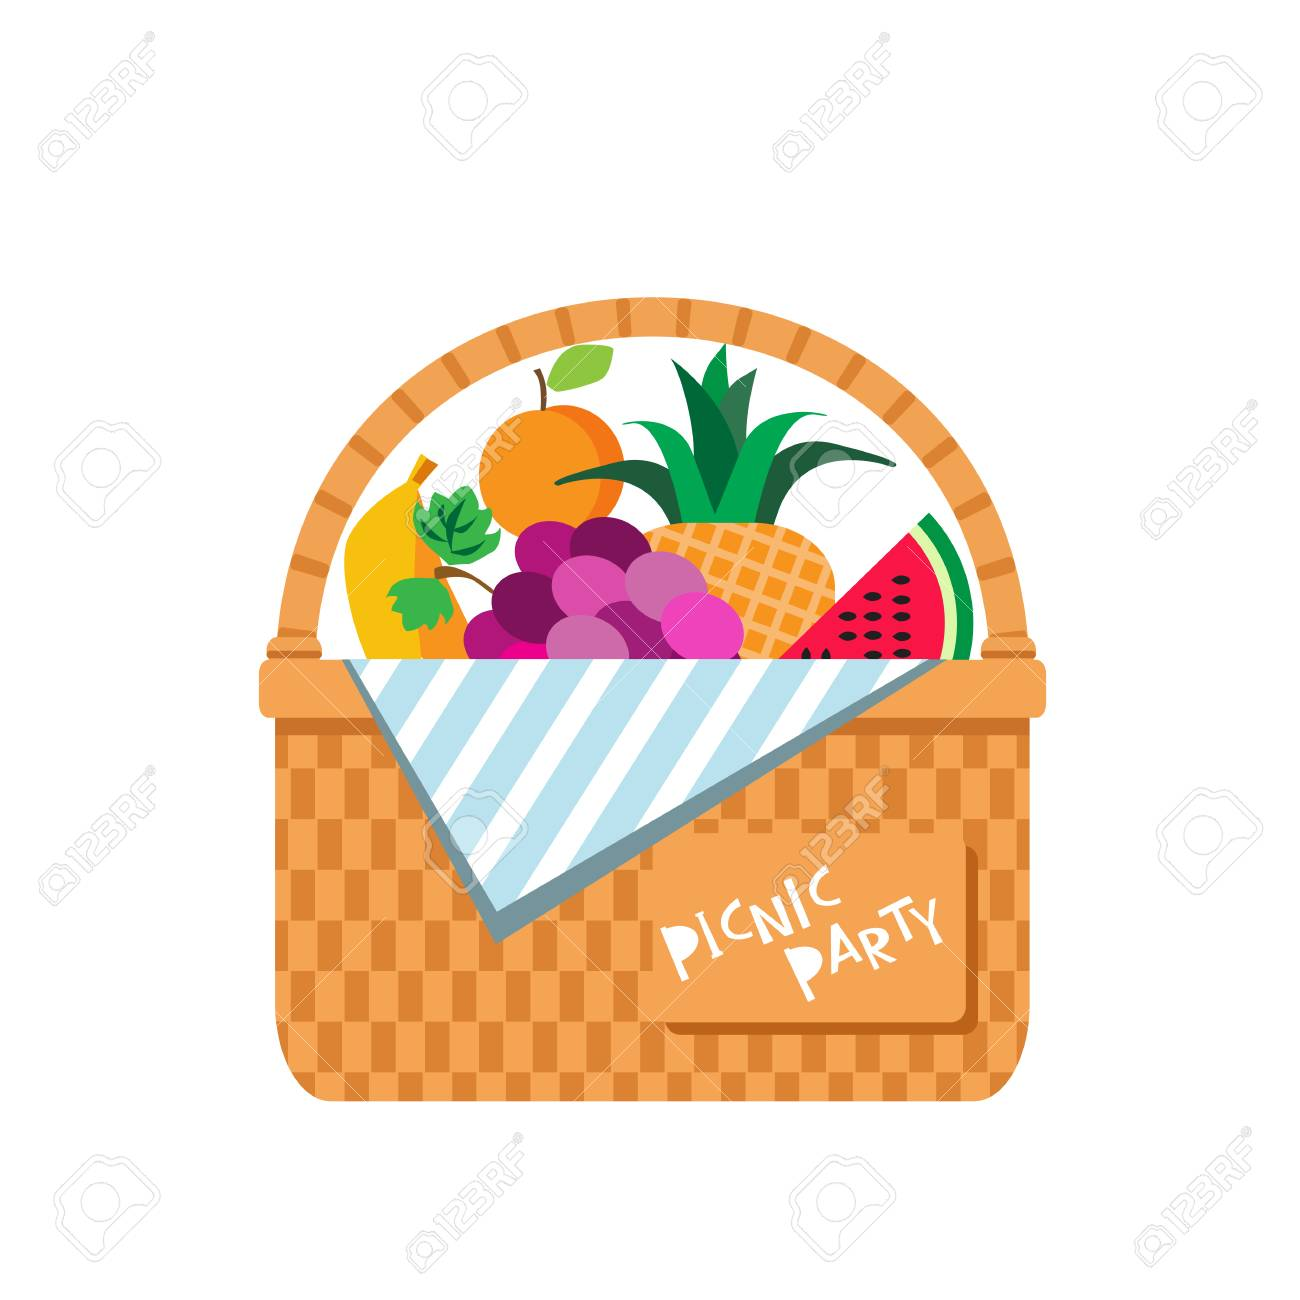 Wicker Picnic Basket With Fruits Watermelon Apple Banana Grapes Royalty Free Cliparts Vectors And Stock Illustration Image 104727269